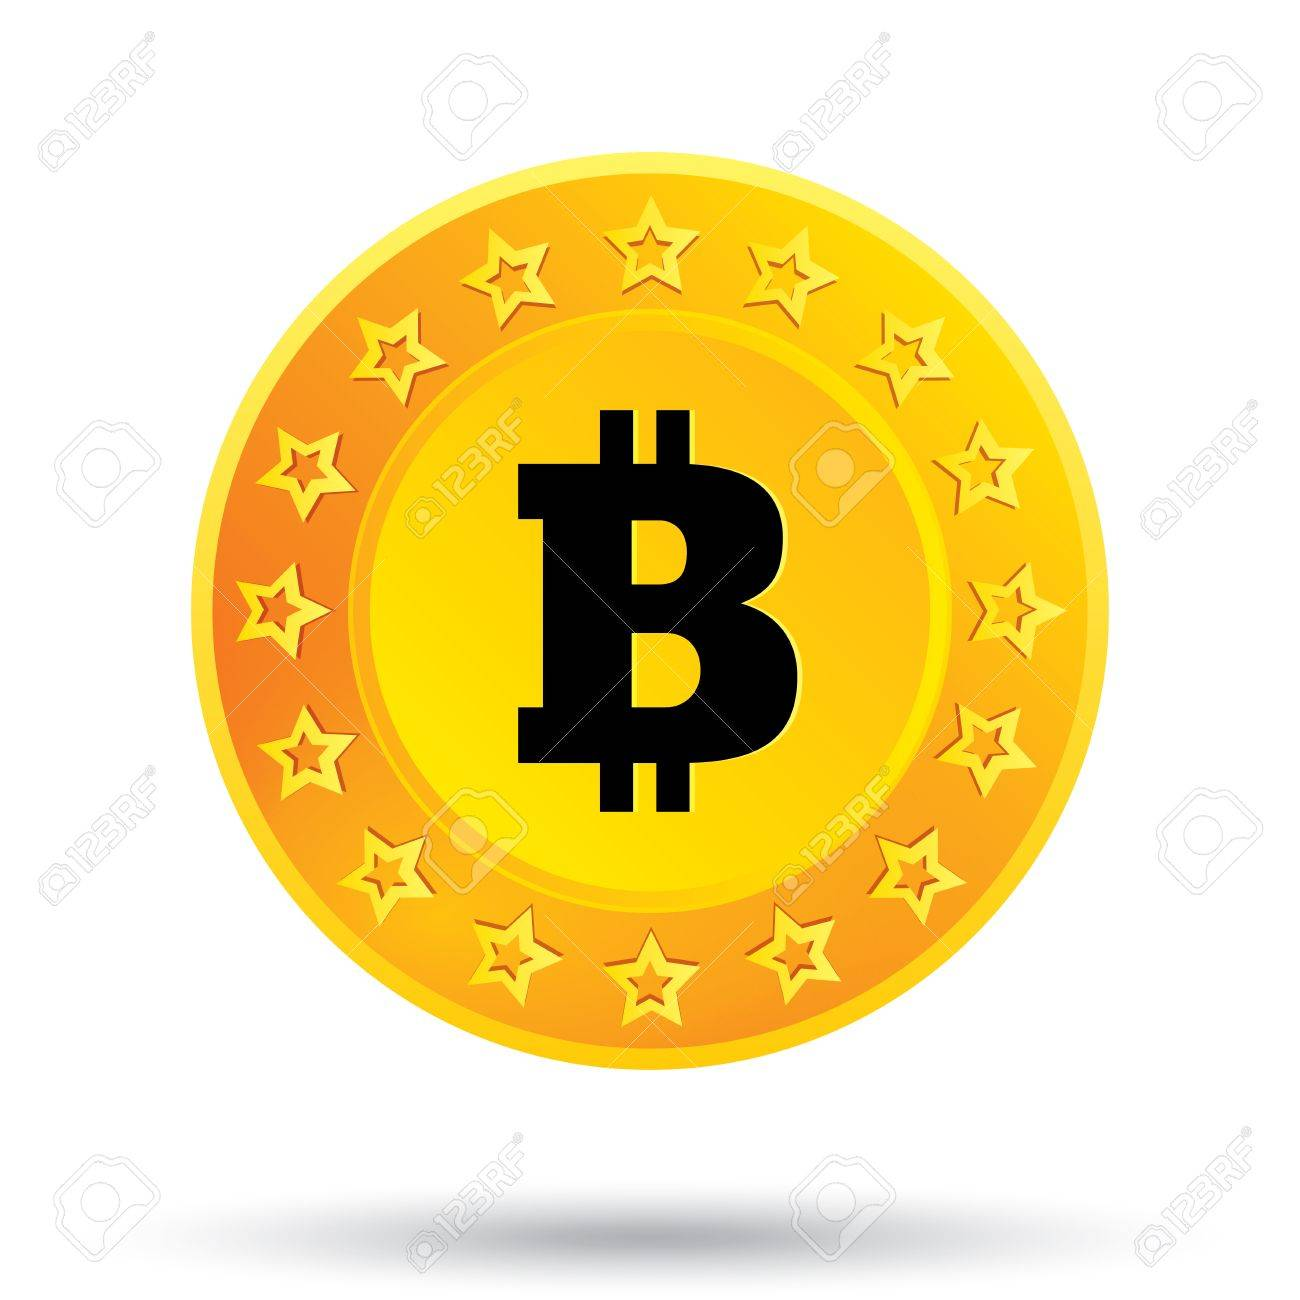 Bitcoin Icon Innovative Cryptography Currency Open Source P2P Peer To